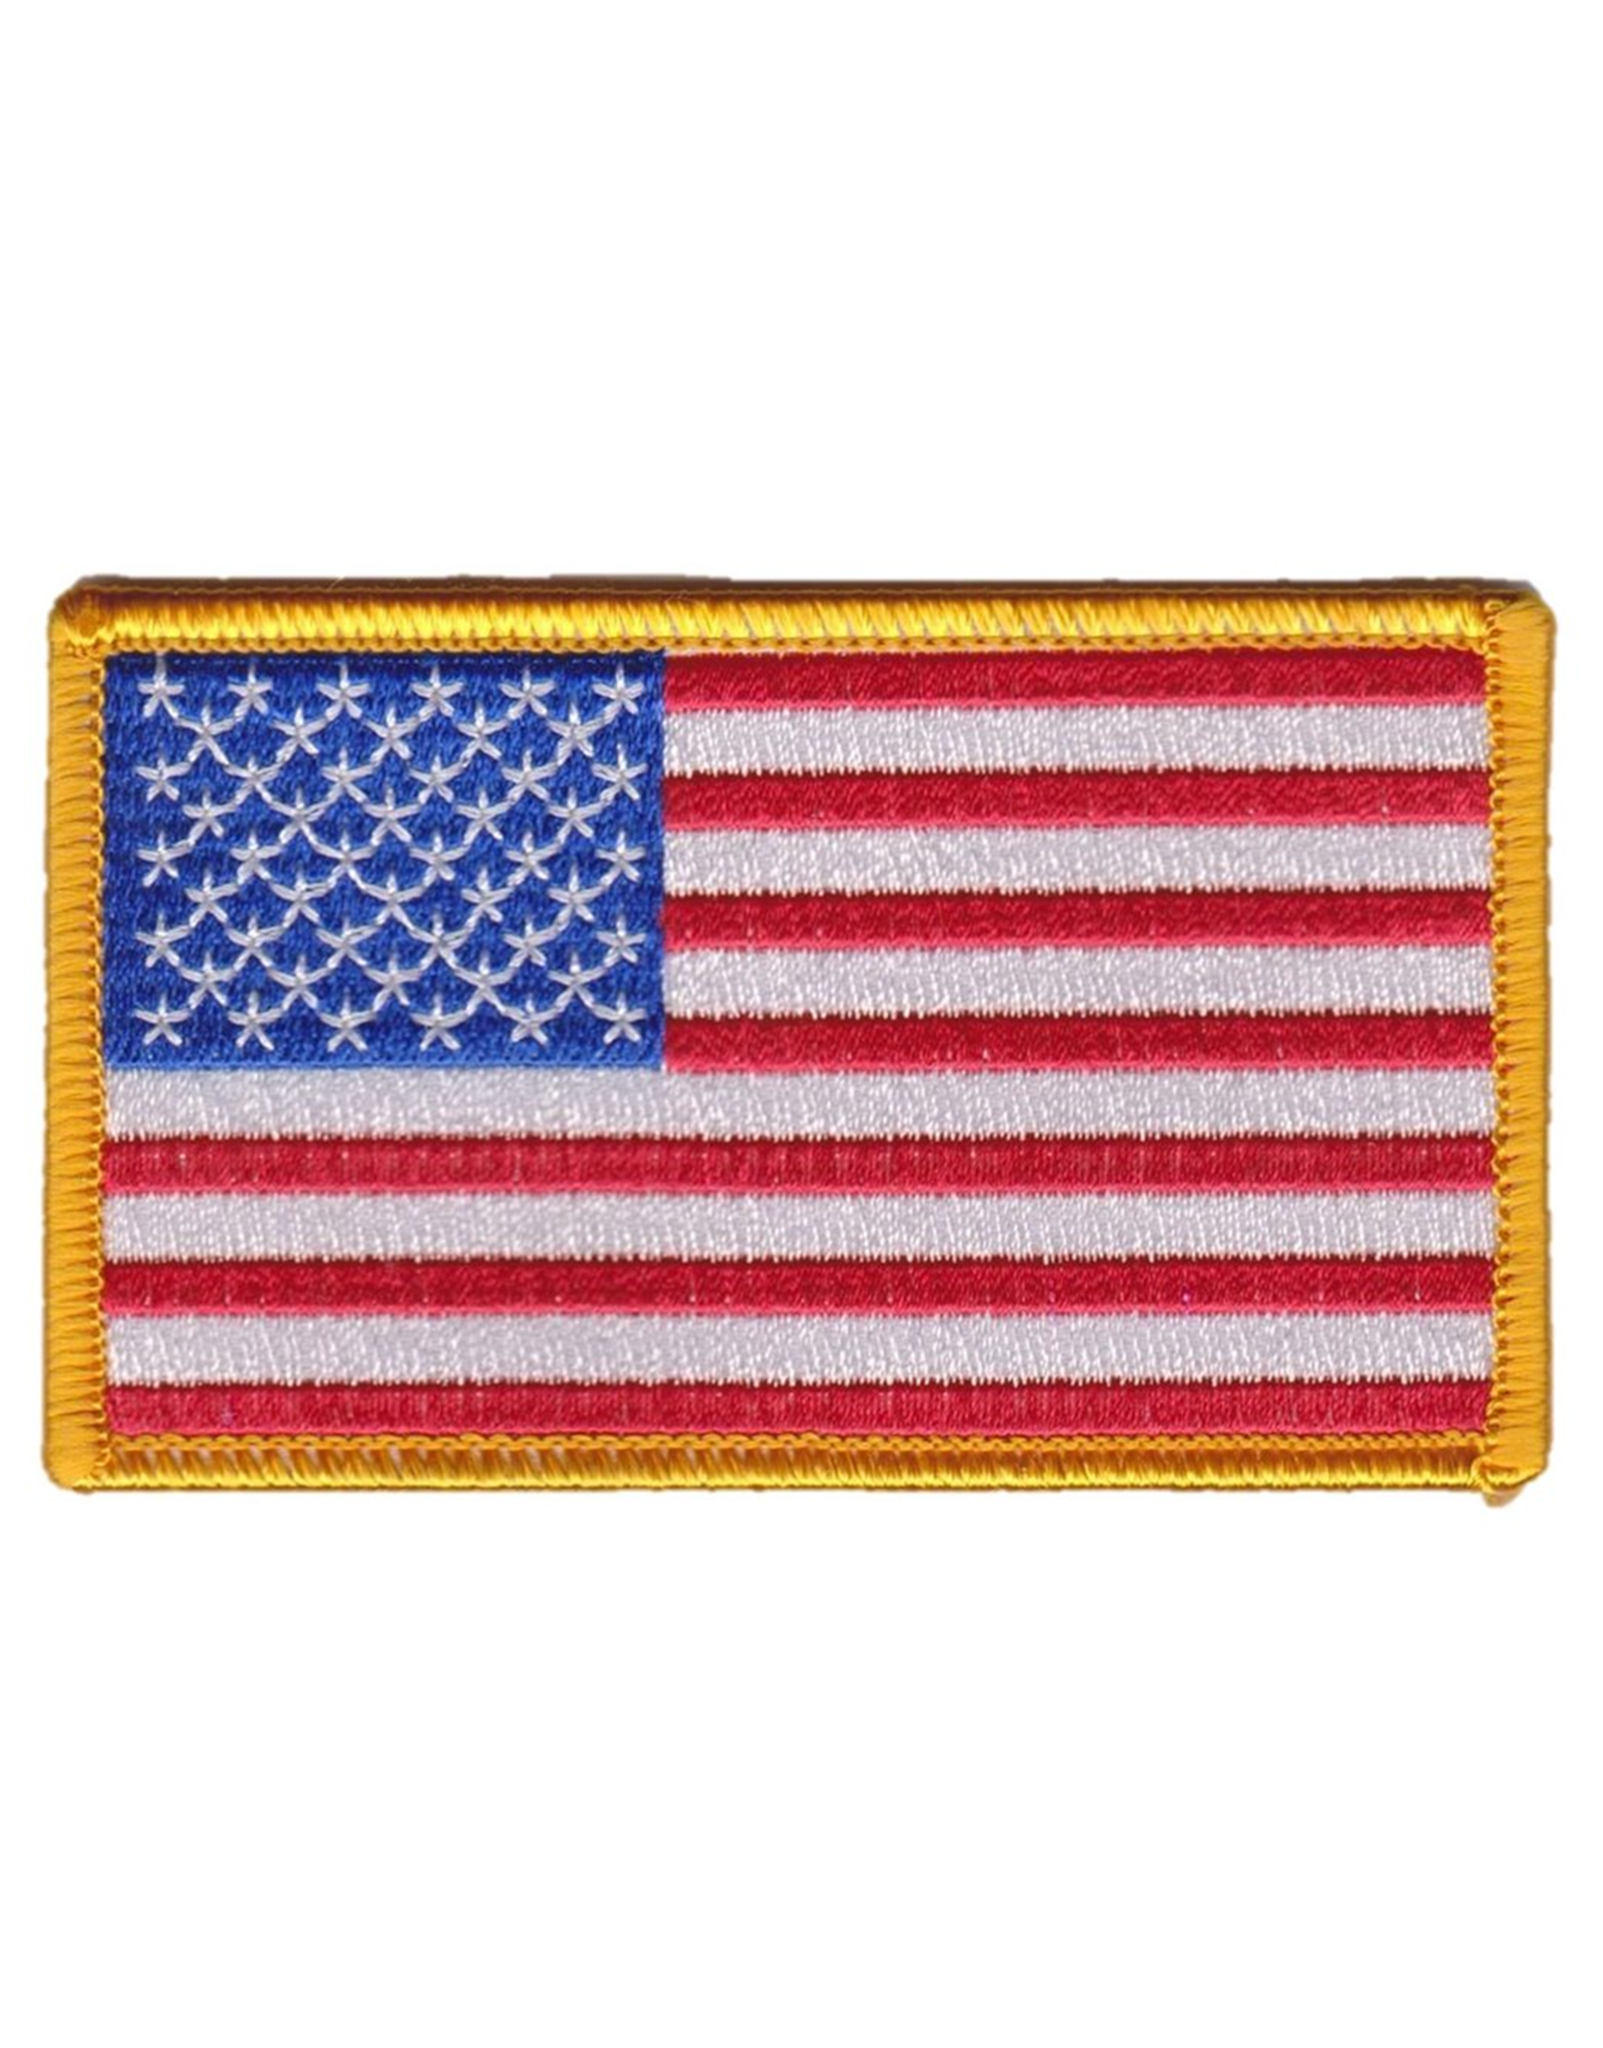 Usa American Flag Patch Army Military Badge Gold Border Royal Blue Patch Forward American Flag Patch Flag Patches American Flag